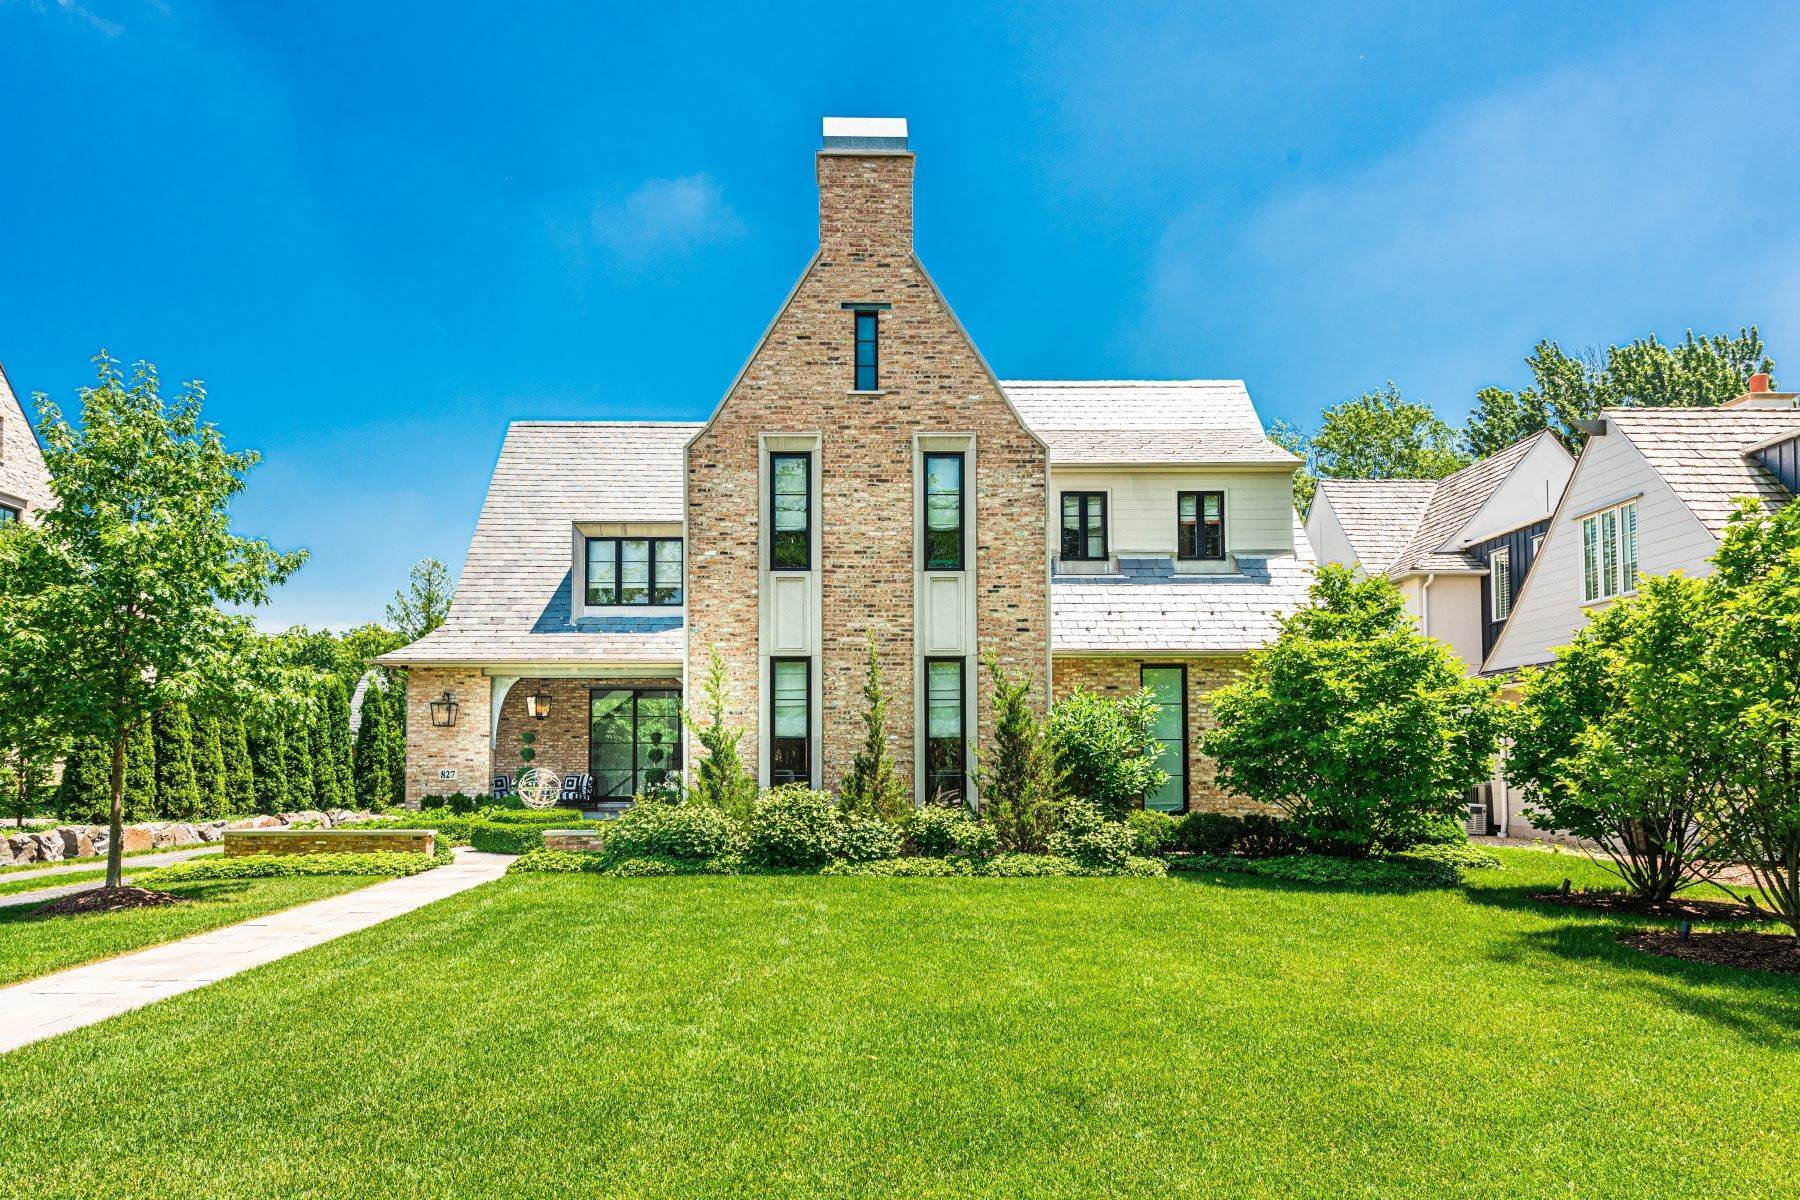 Property for Sale at Bask In Luxury 827 S Oak Street Hinsdale, Illinois 60521 United States